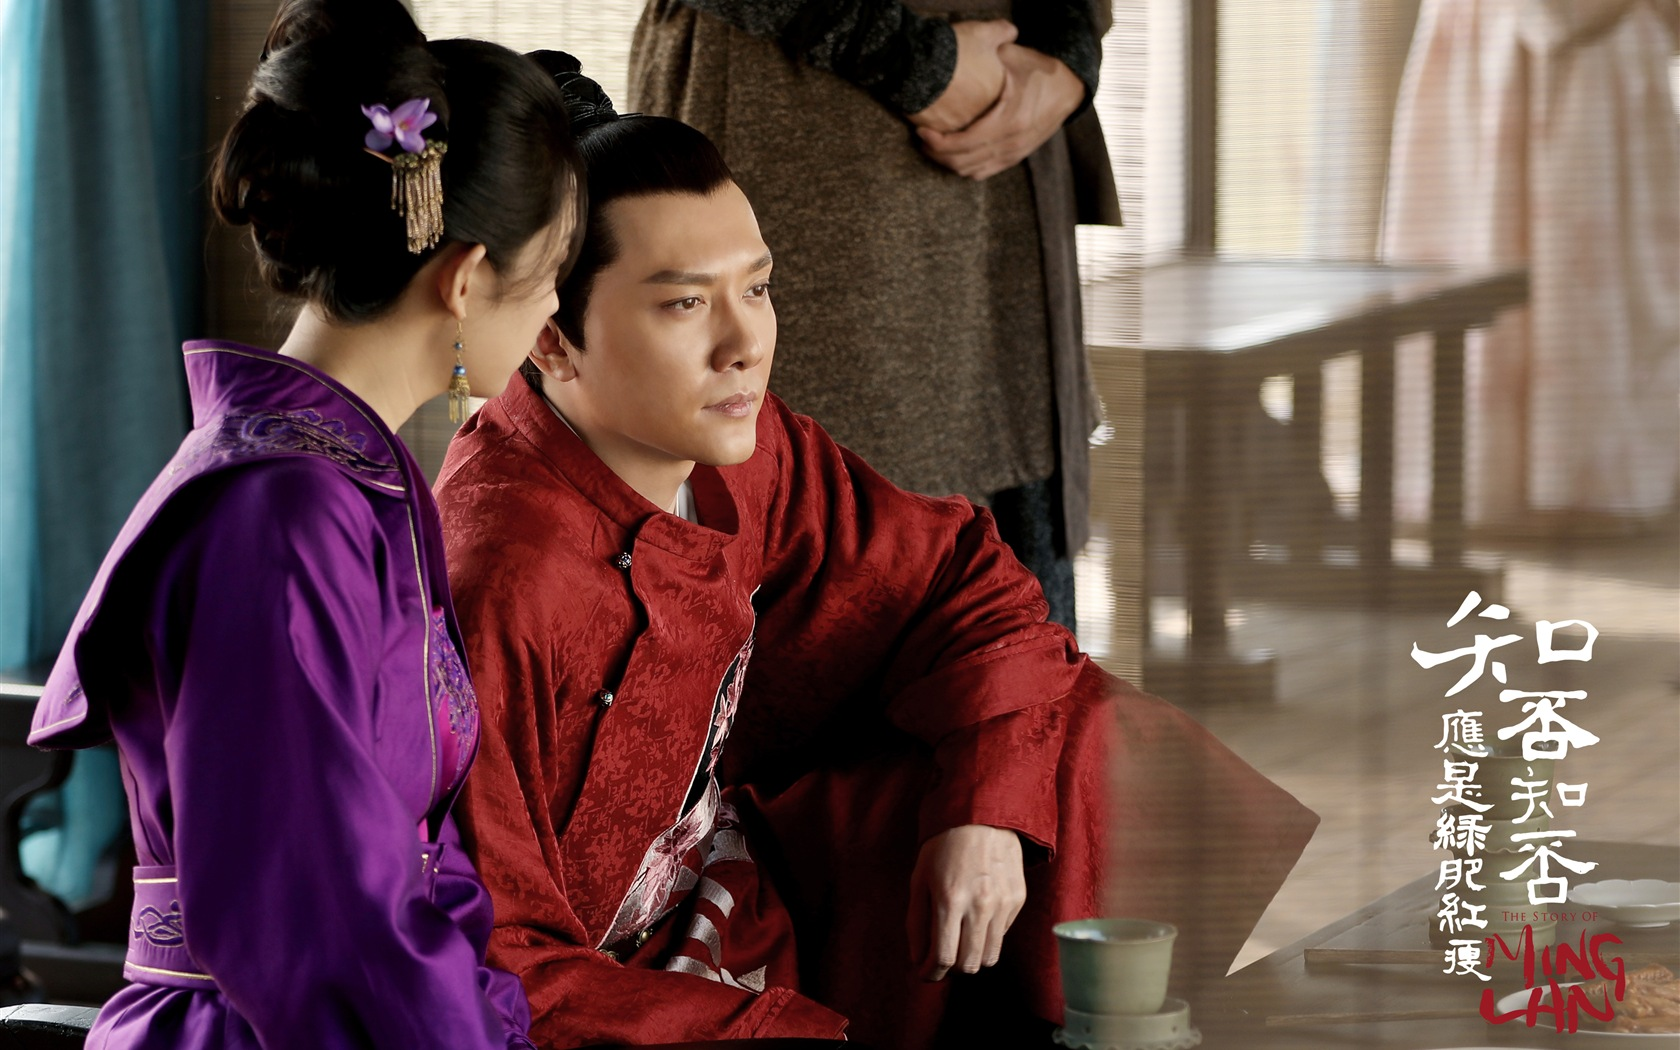 The Story Of MingLan, TV series HD wallpapers #42 - 1680x1050